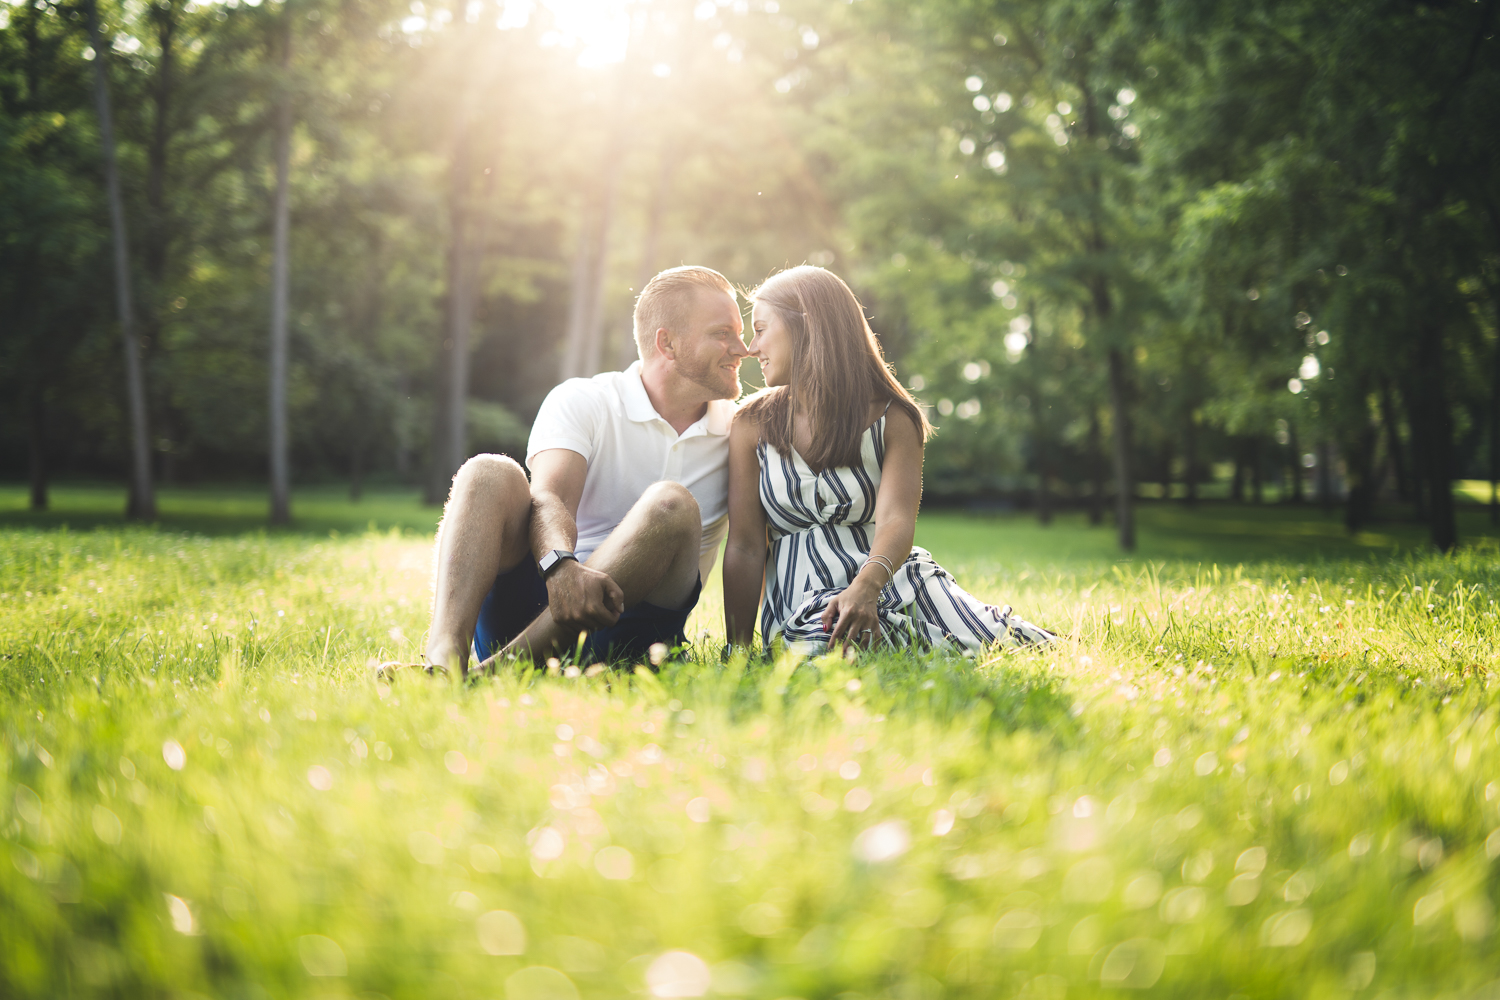 Allentown Engagement photographer captures couple sitting in field together at sunset